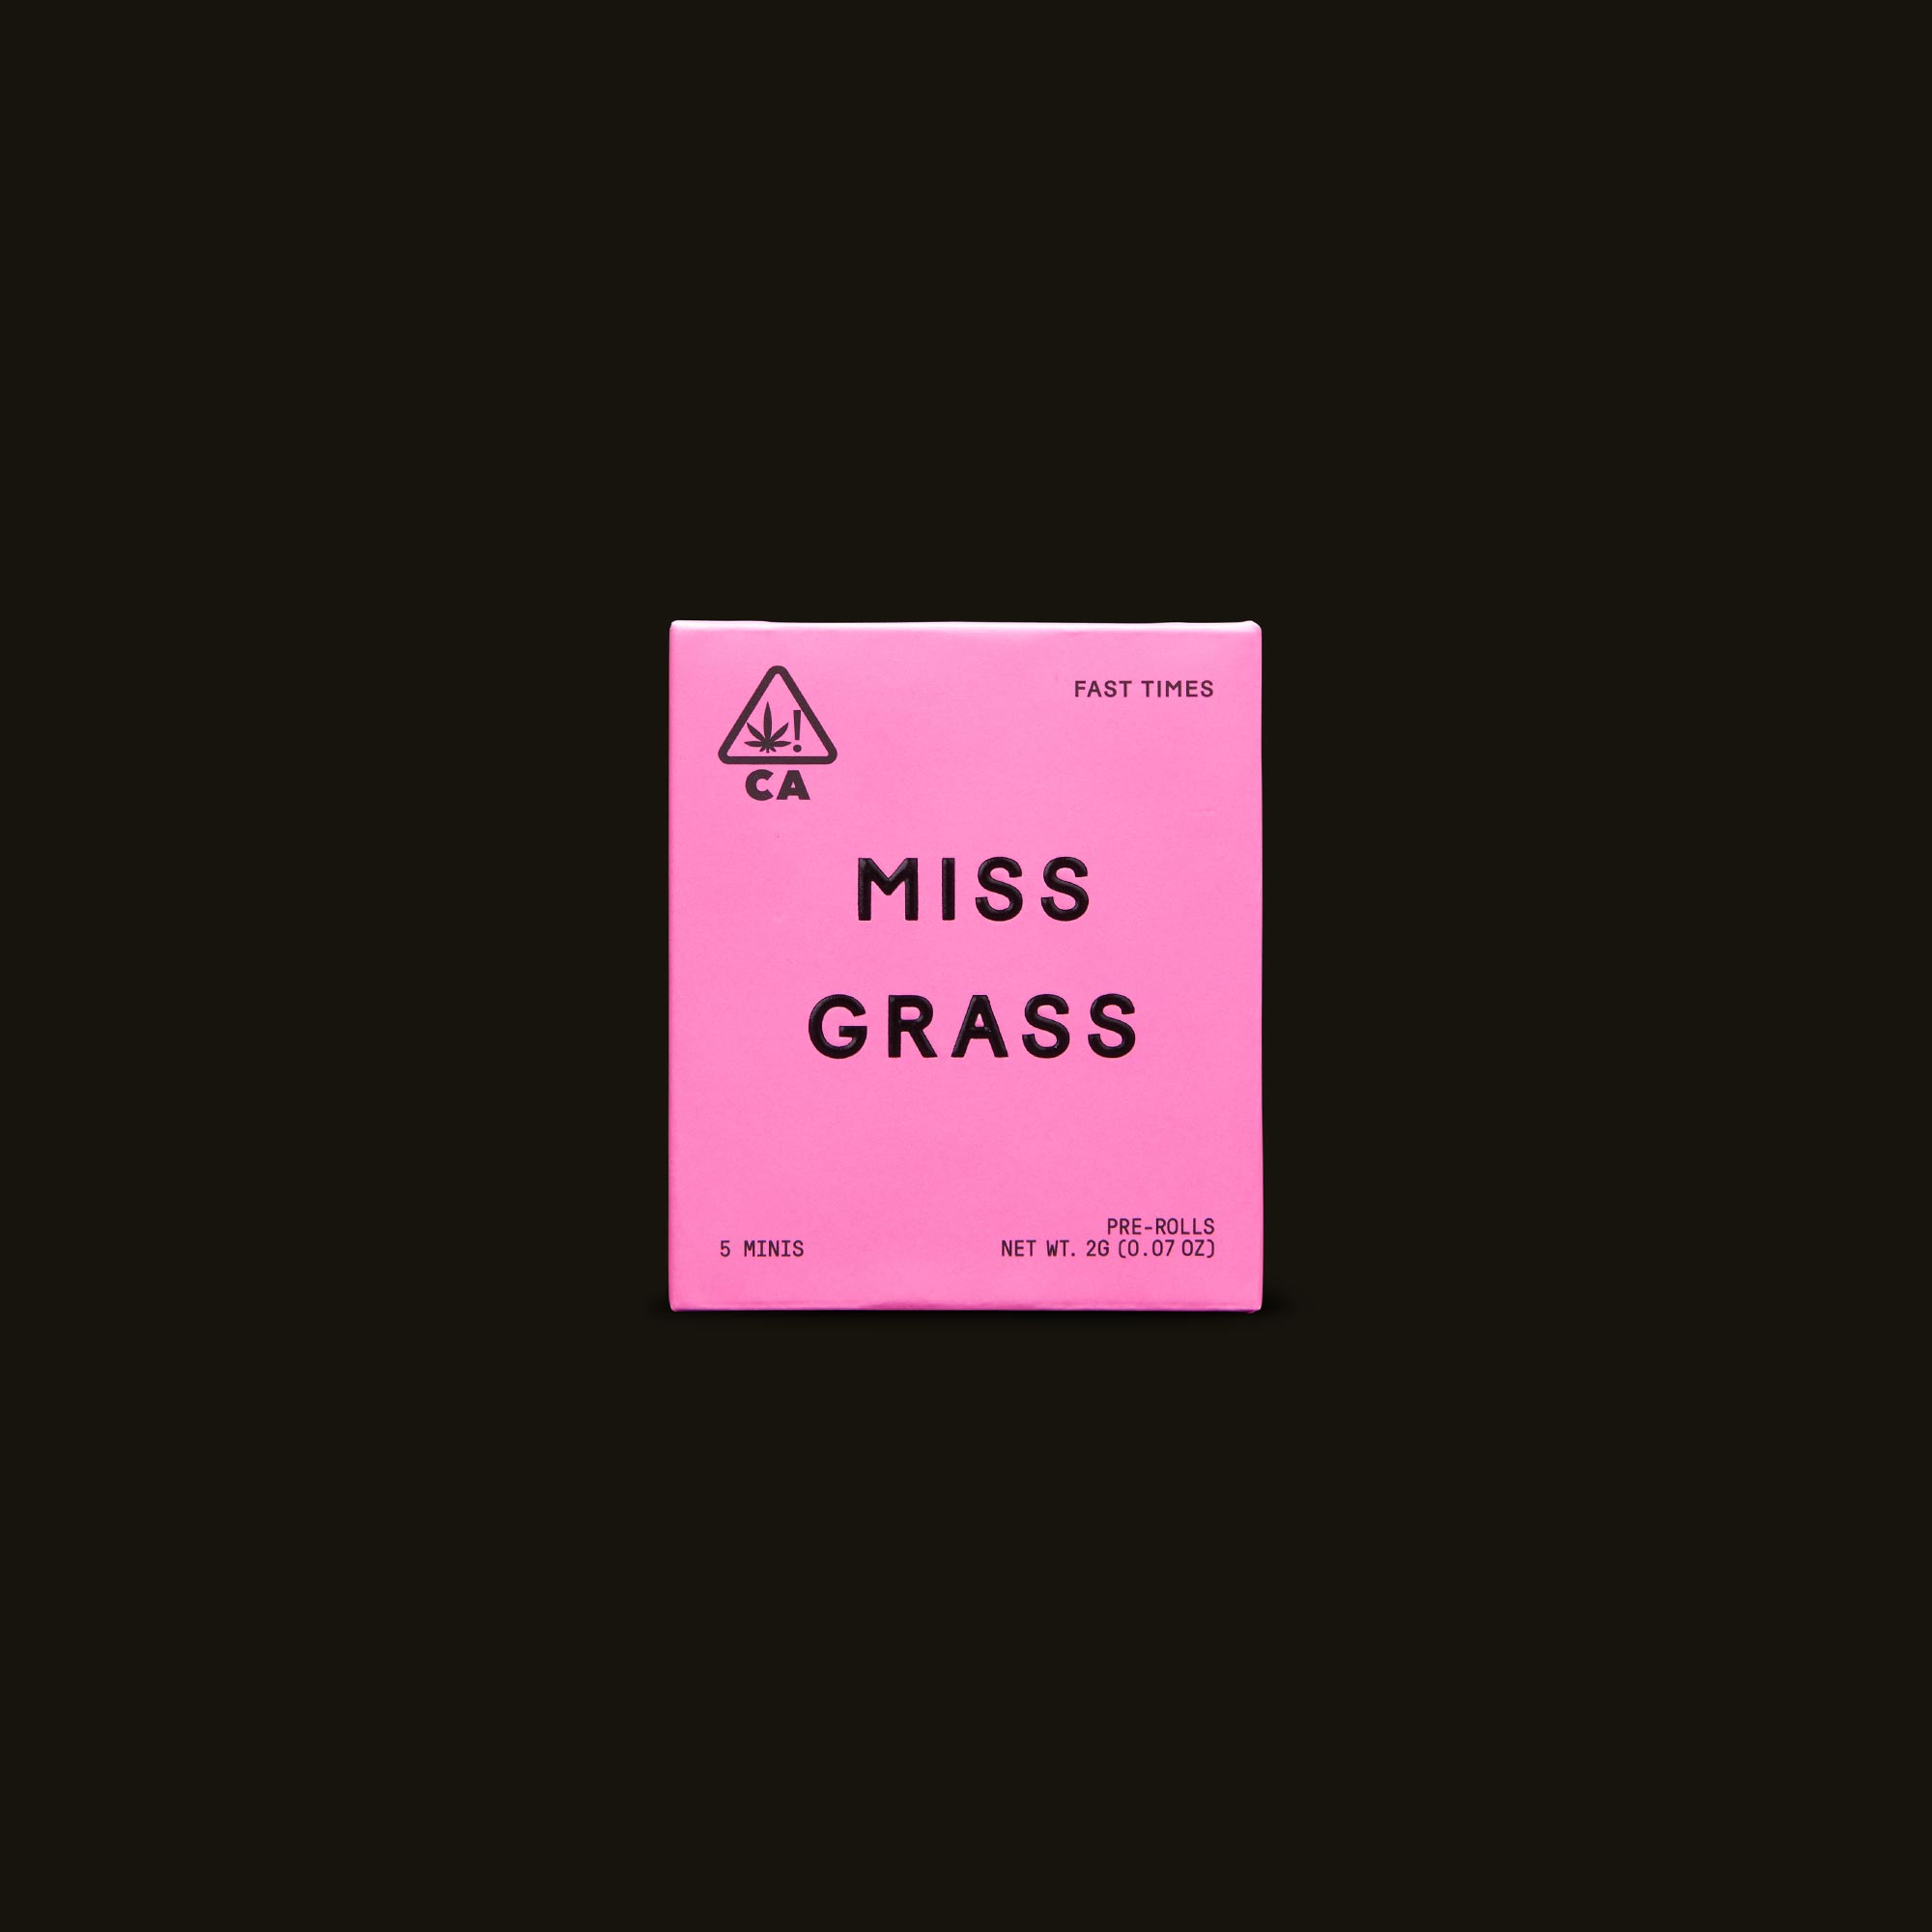 Miss Grass Fast Times Front Packaging